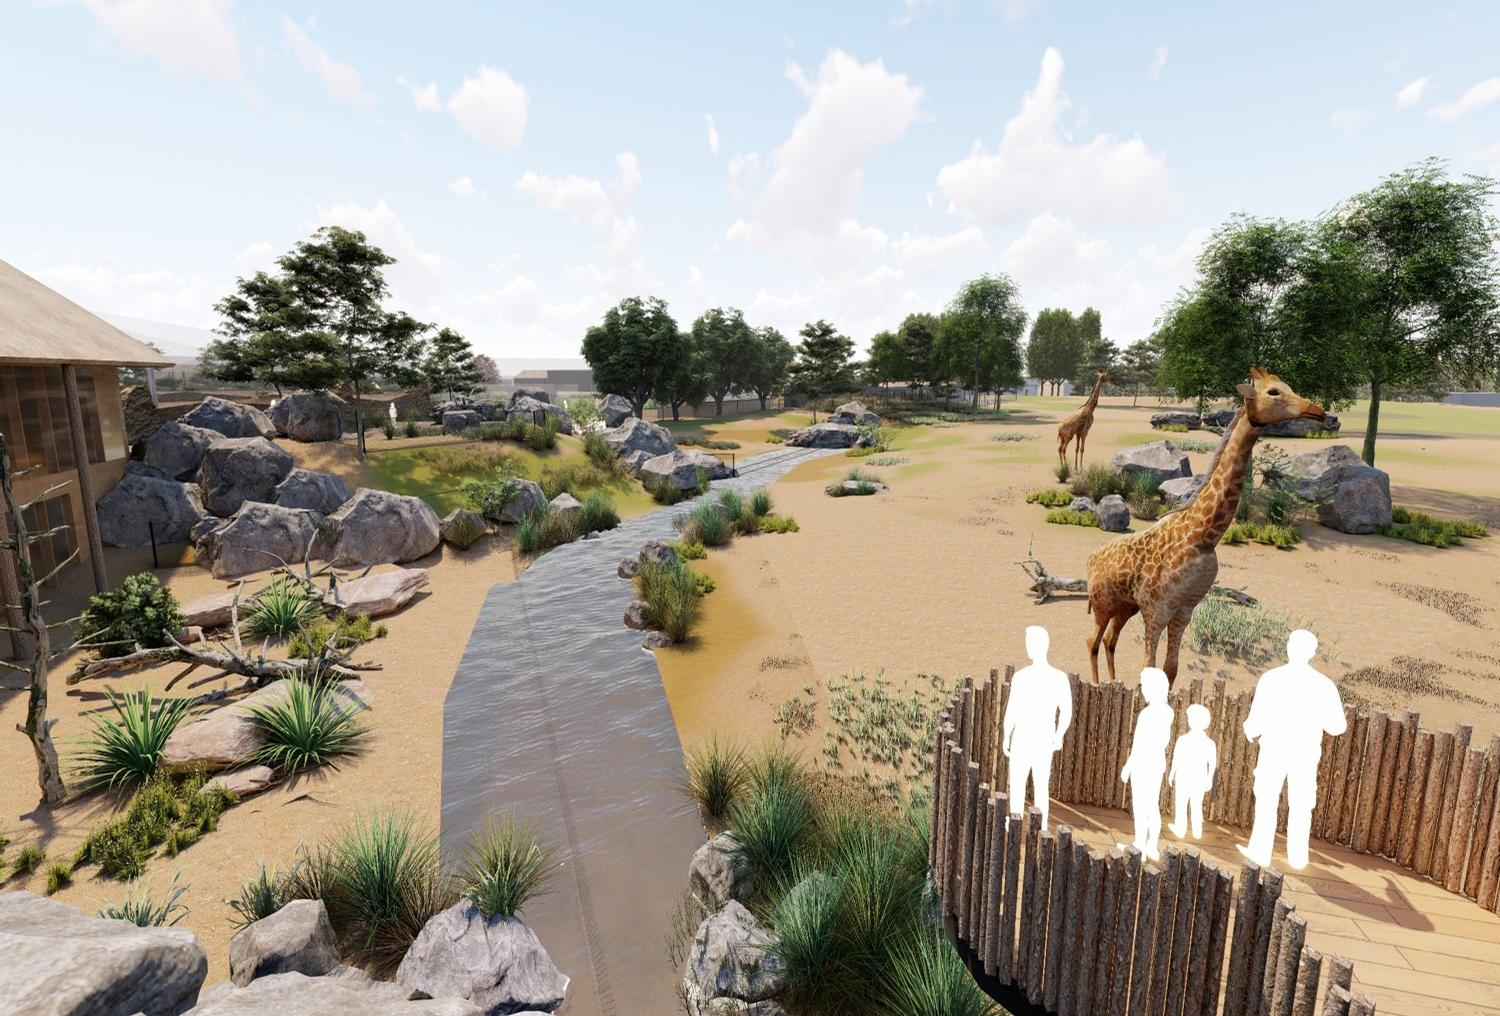 Should plans be approved, Grasslands will open to the public in 2022 / Chester Zoo